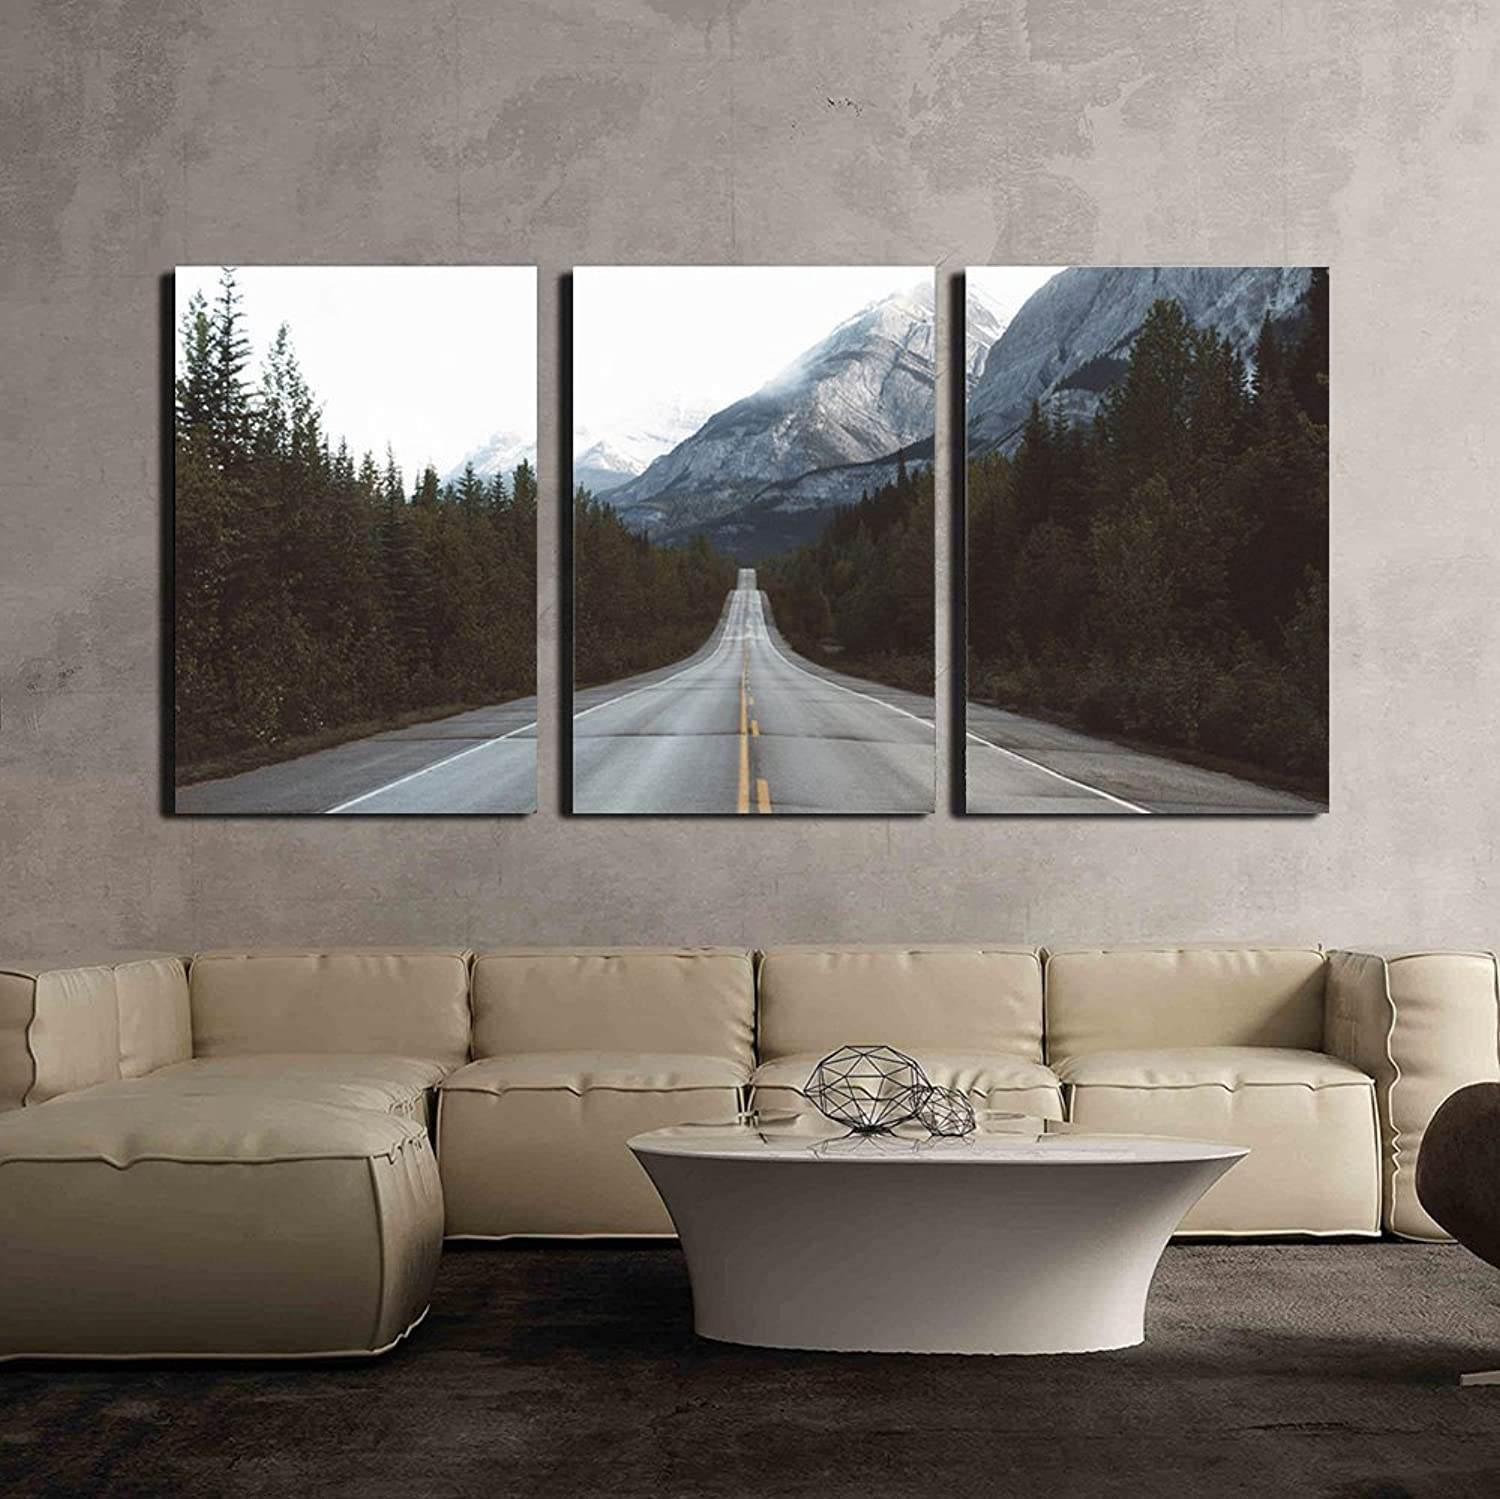 Wall26 - 3 Piece Canvas Wall Art - Road in Mountain Area - Modern Home Decor Stretched and Framed Ready to Hang - 24 x36 x3 Panels